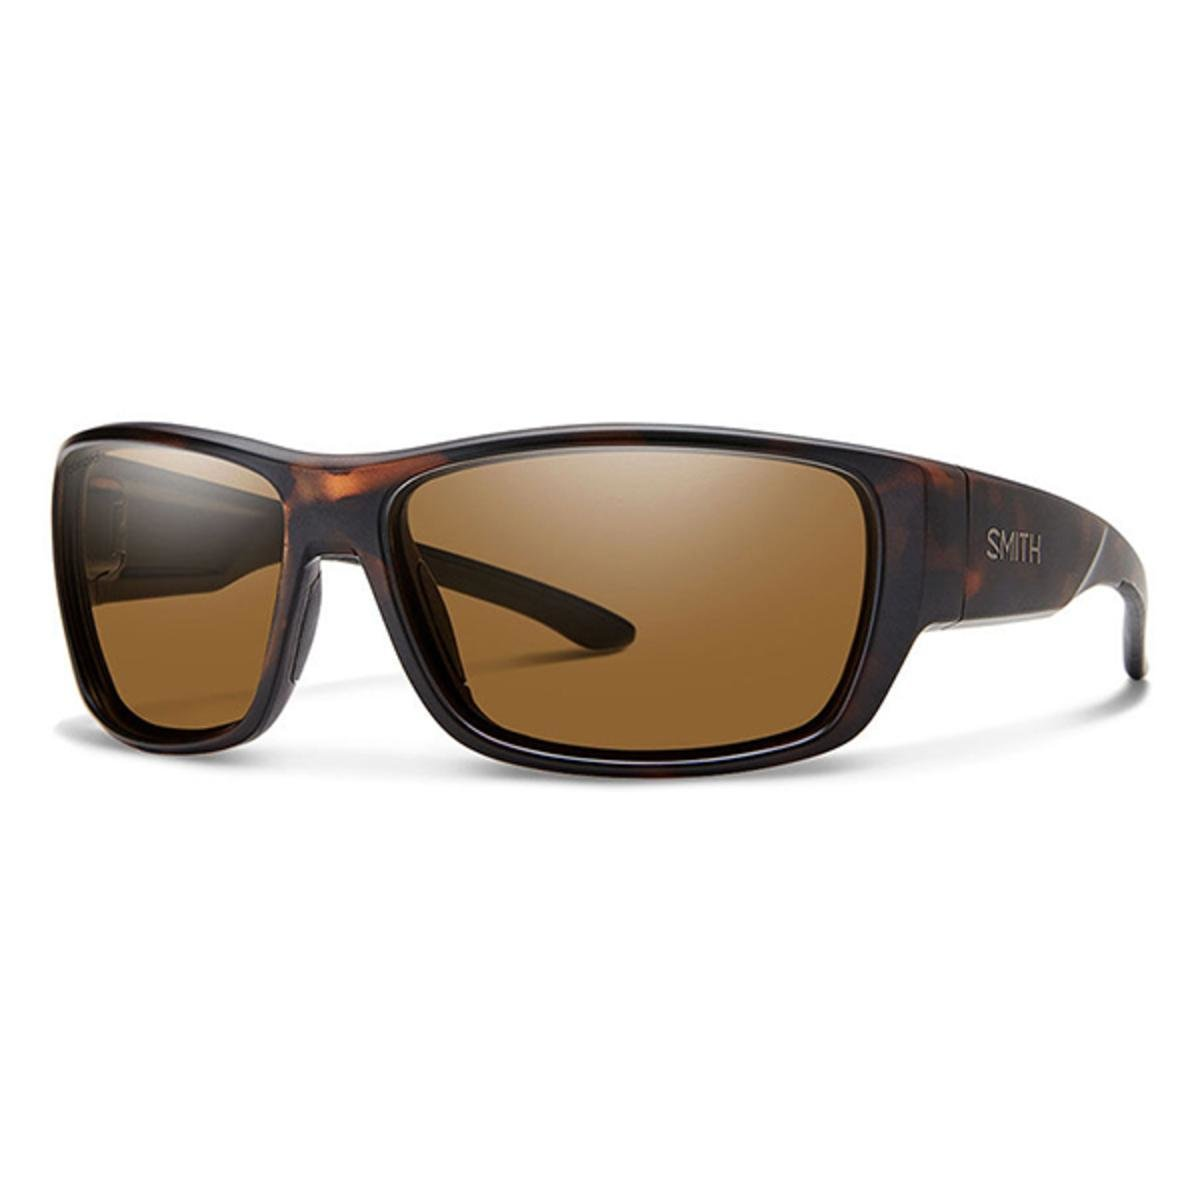 3f826dbb8bf Smith Forge Sunglasses Matte Tortoise Carbonic Polarized Brown - The  Warming Store